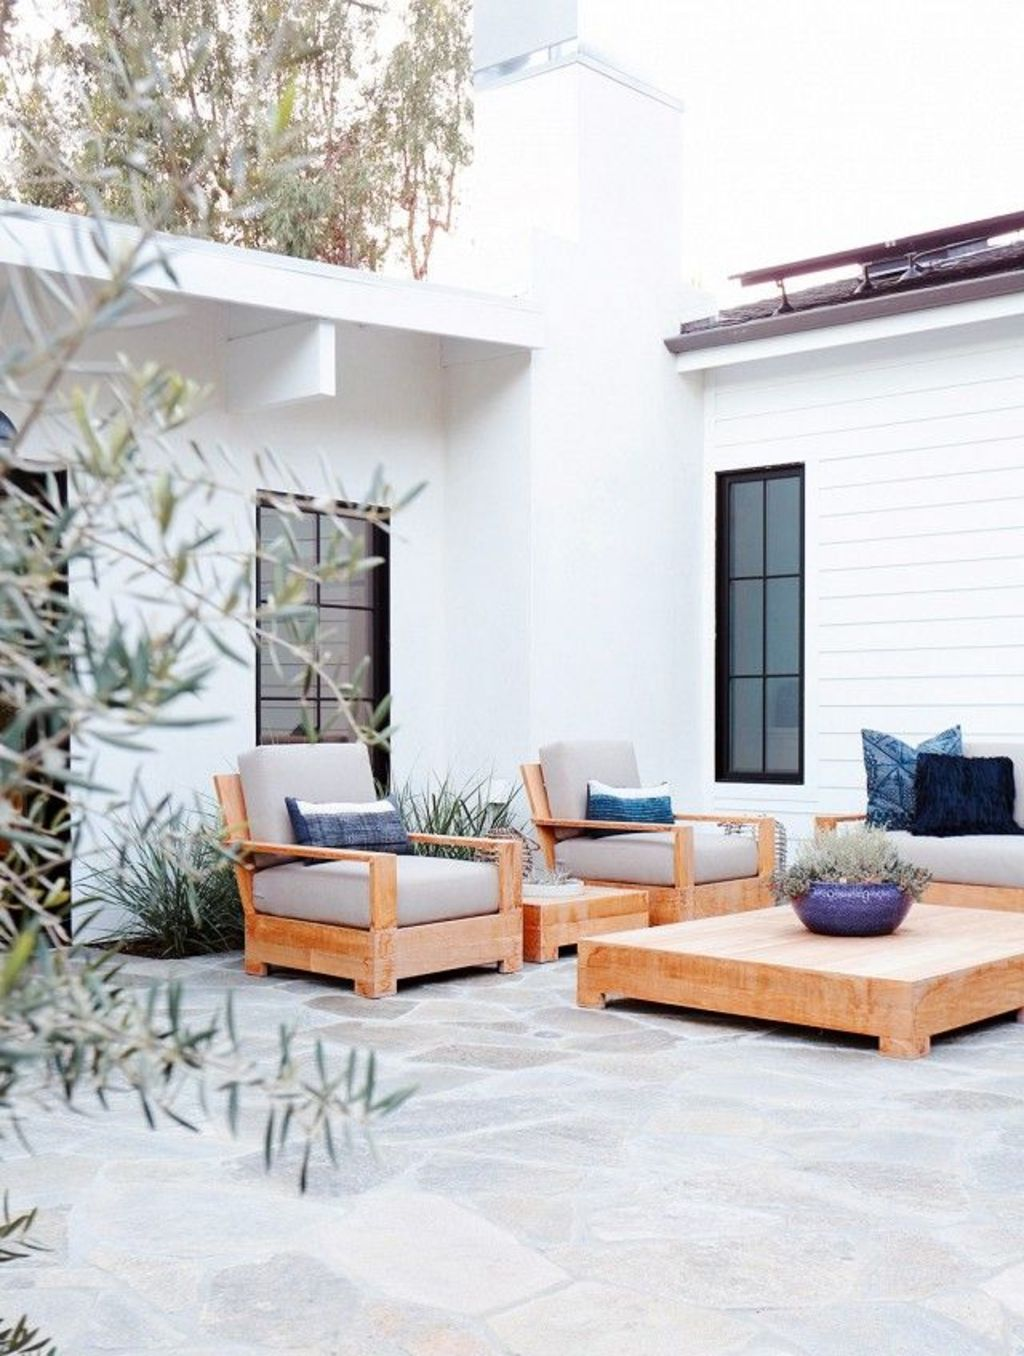 Ideas for your outdoor living areas fireplaces fire pits outdoor kitchens patios living areas and more Part 4